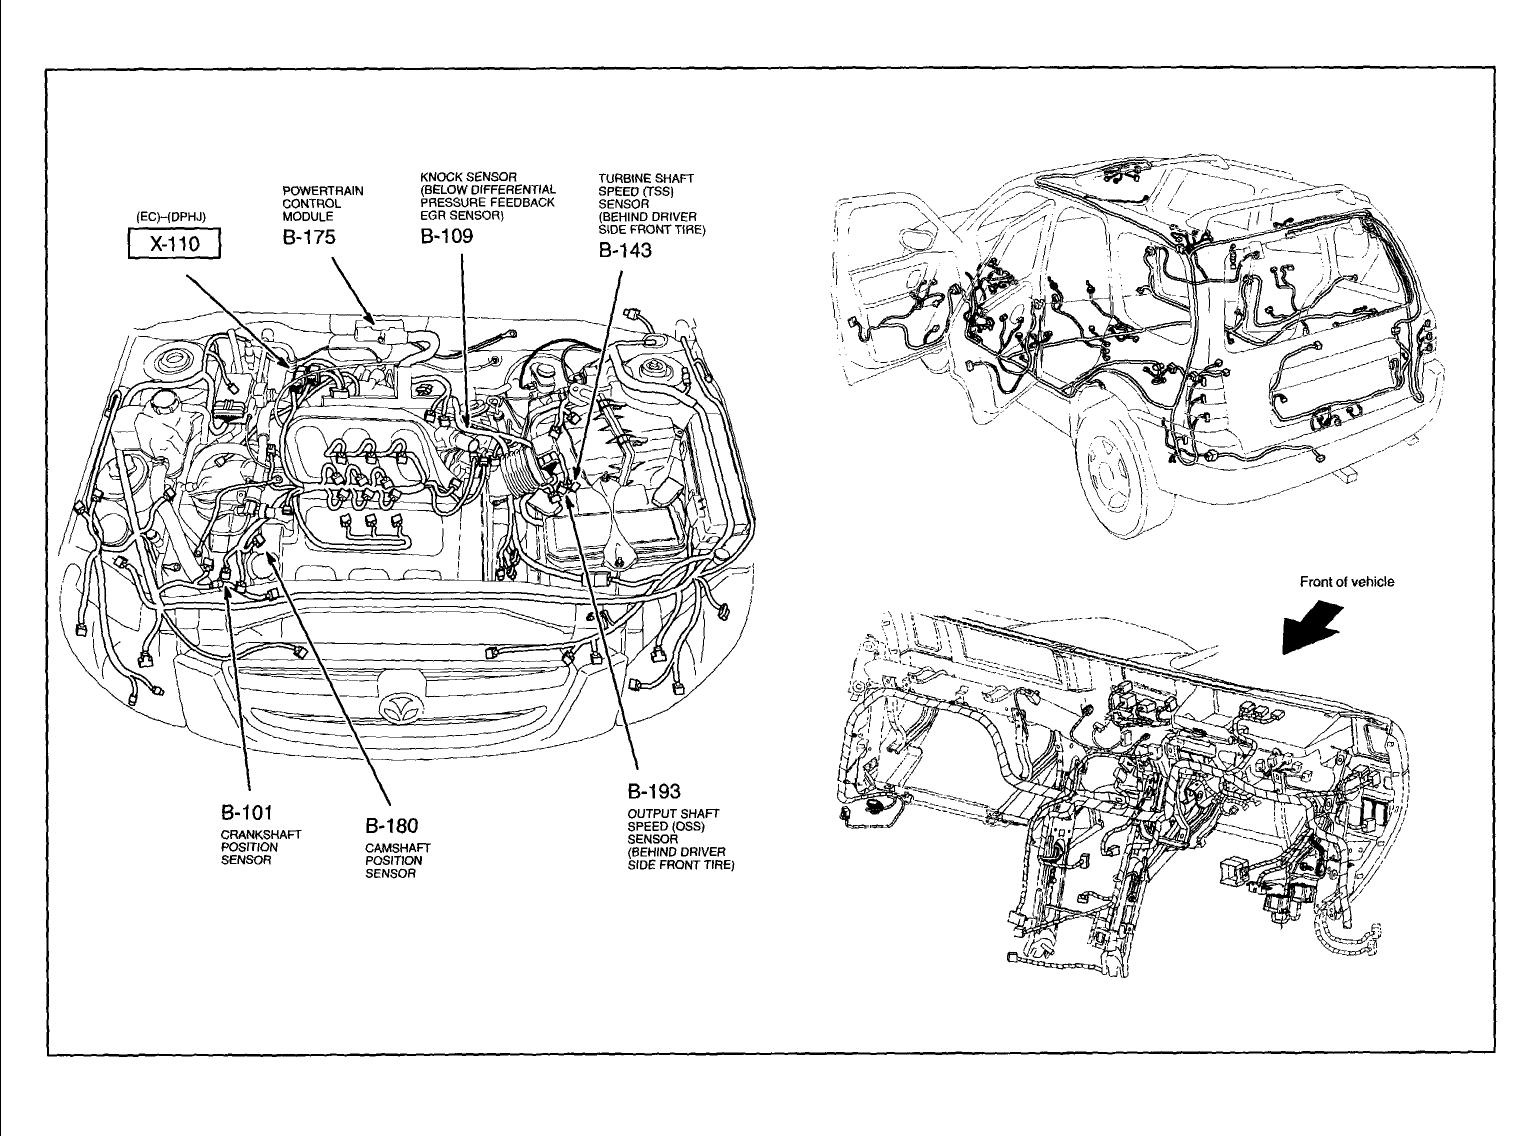 Mazda Mx3 Engine Diagram Data Schematics Wiring Fuse Box Mx 3 Questions Whear Is The Crankshaft Sencer Locatiom On A Rh Cargurus Com